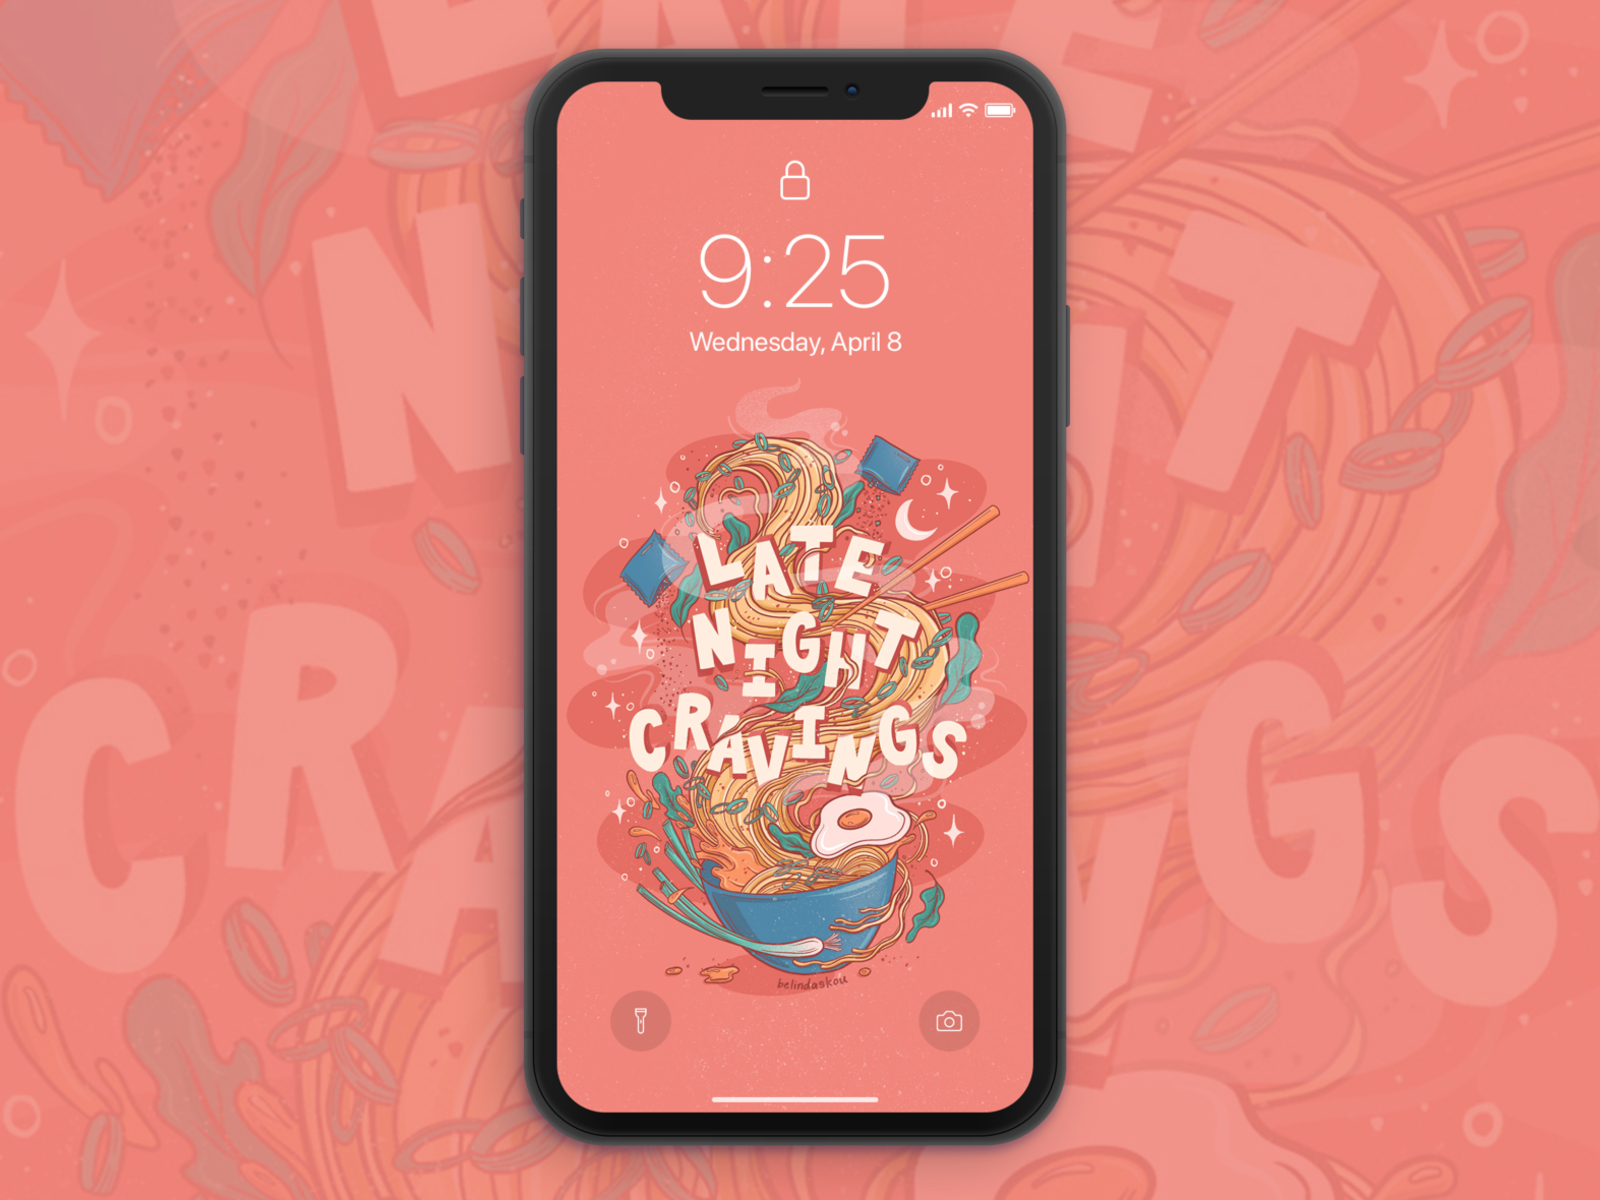 Late Night Cravings Ramen Free Phone Wallpaper By Belinda Kou On